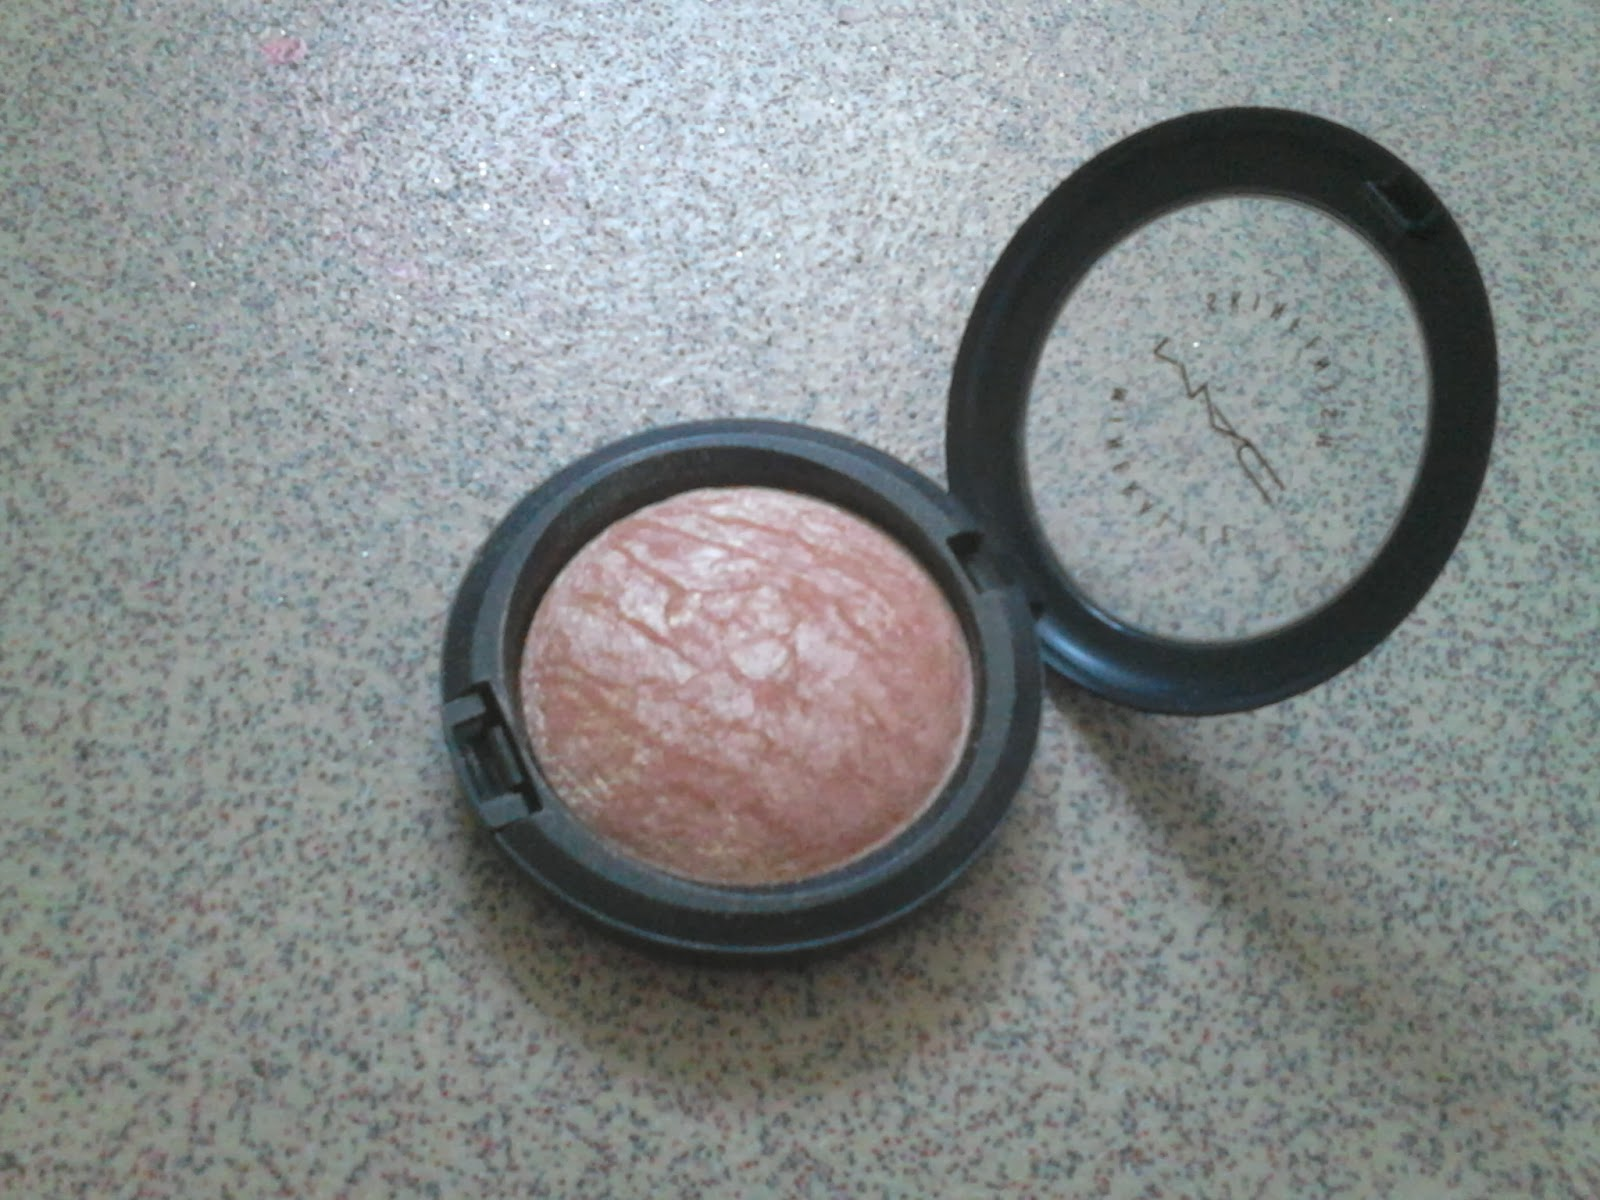 MAC Skinfinish Soft and Gentle